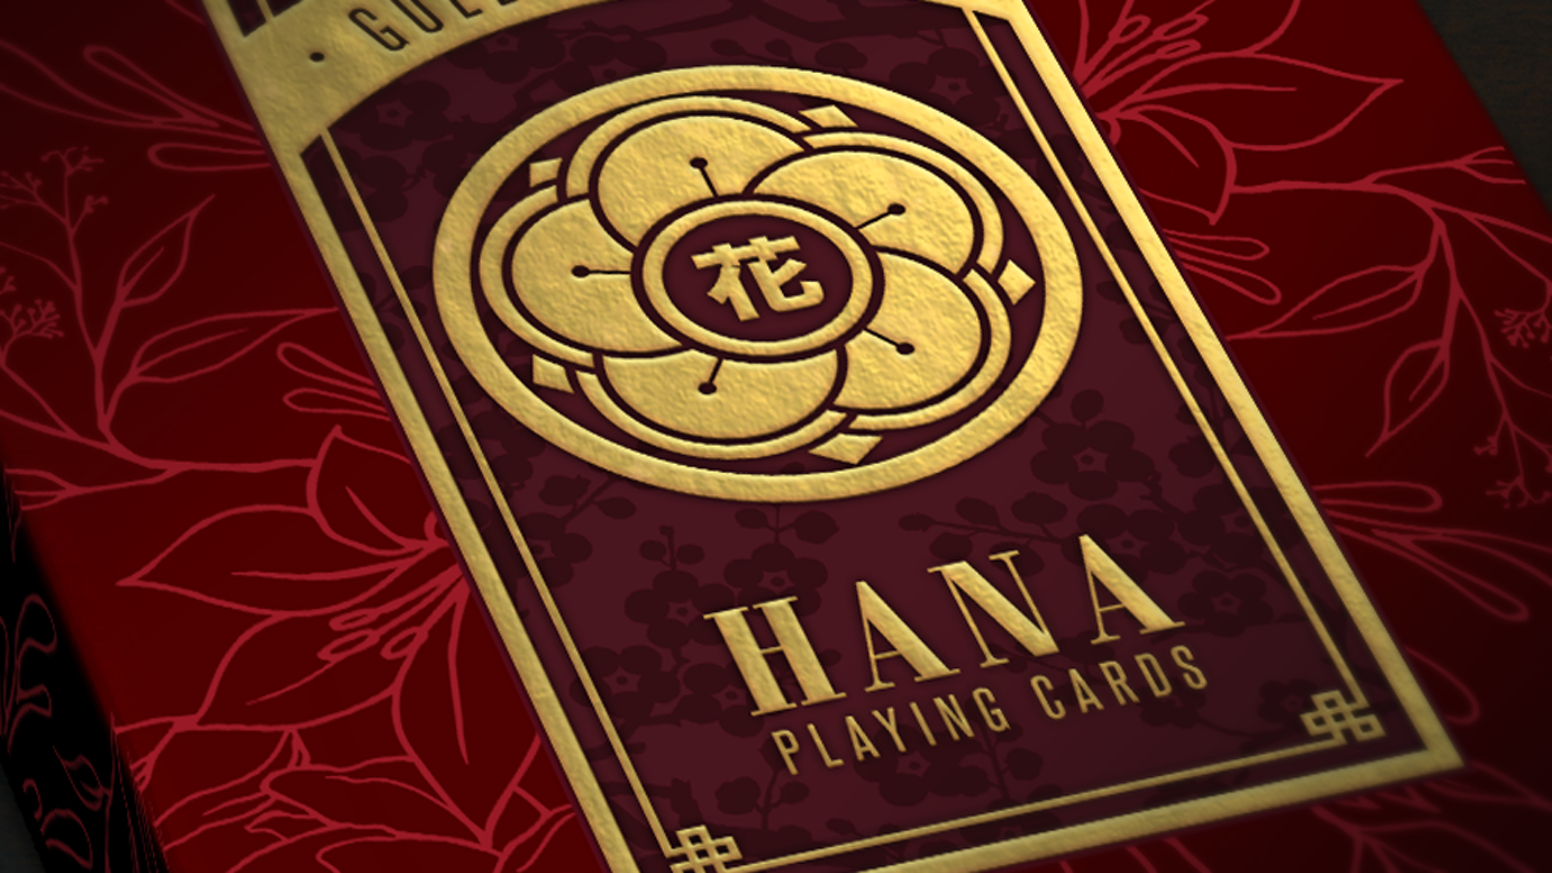 Classical Japanese culture inspired limited edition custom luxury playing card decks designed by Steve Minty